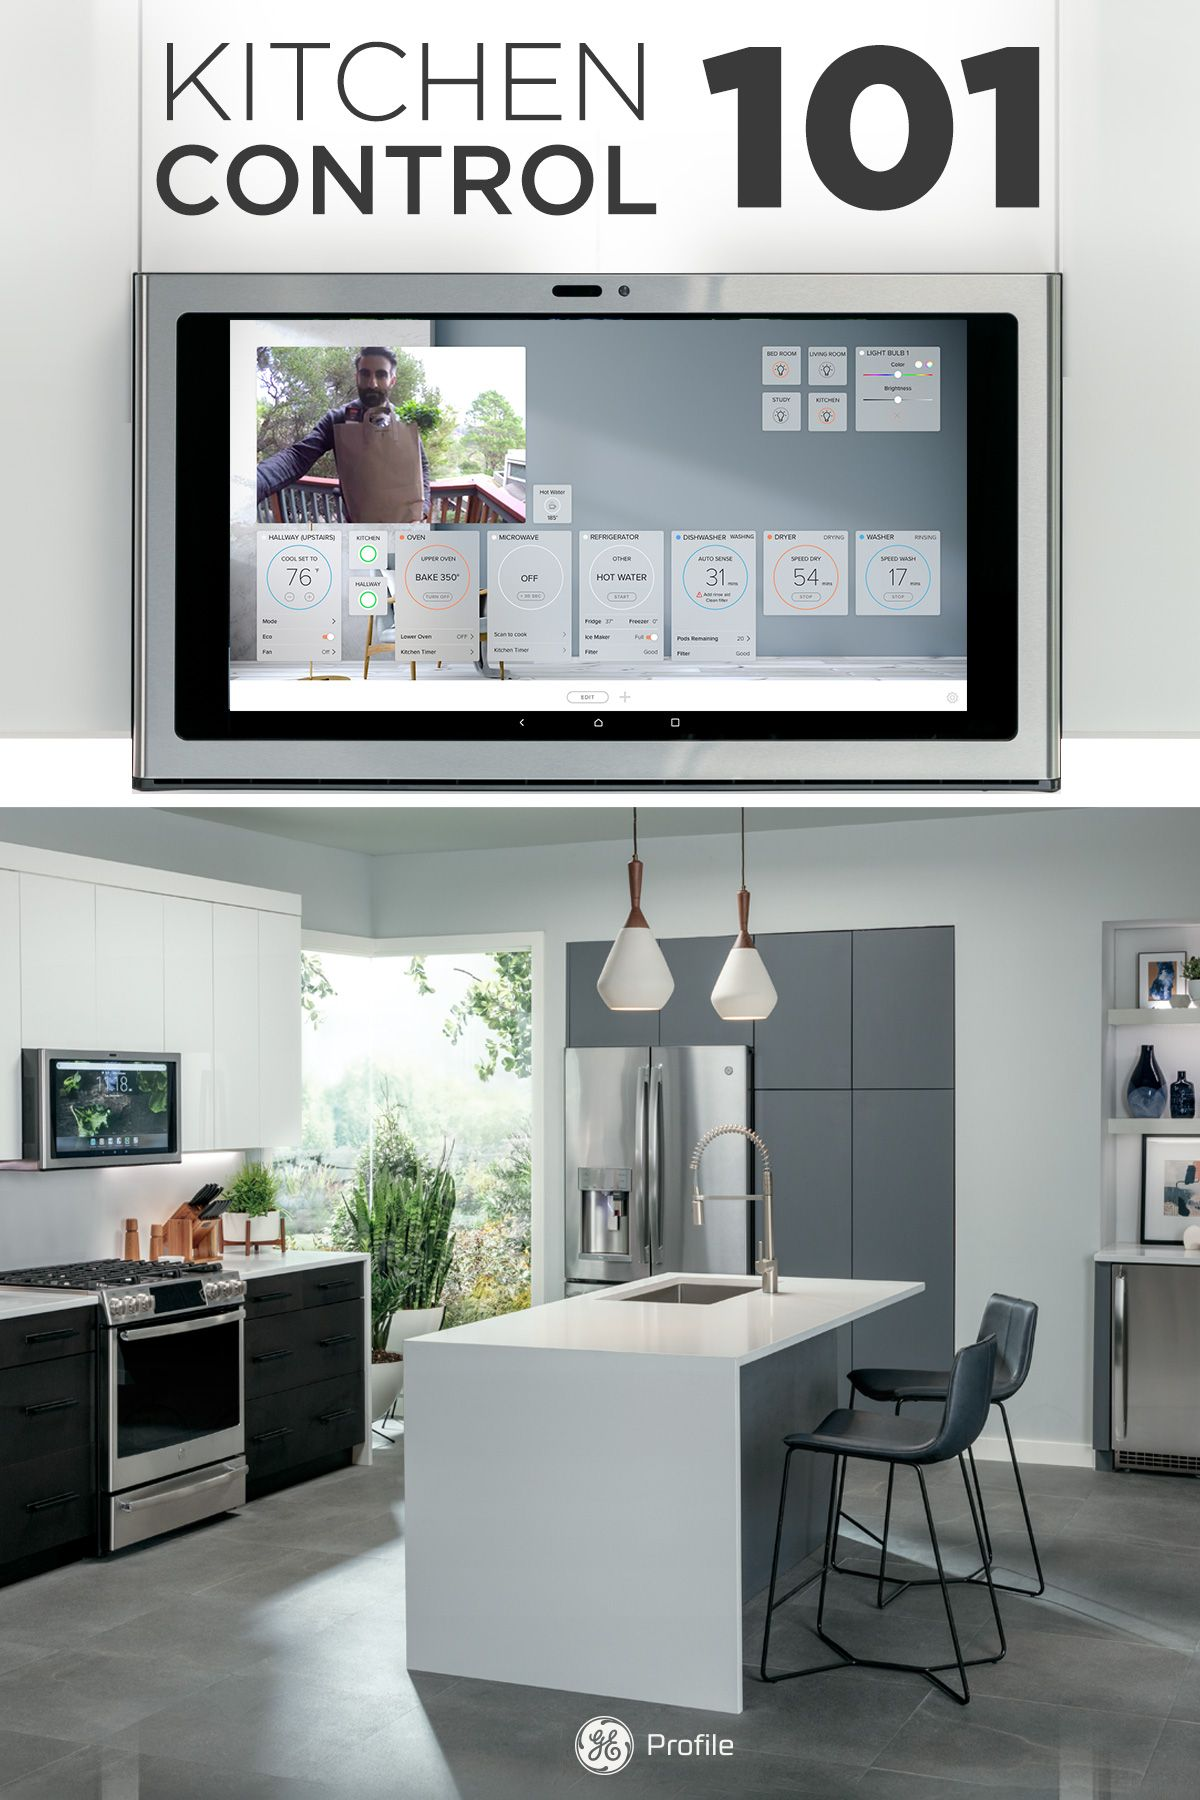 The Kitchen Hub lets you manage your smart home from the